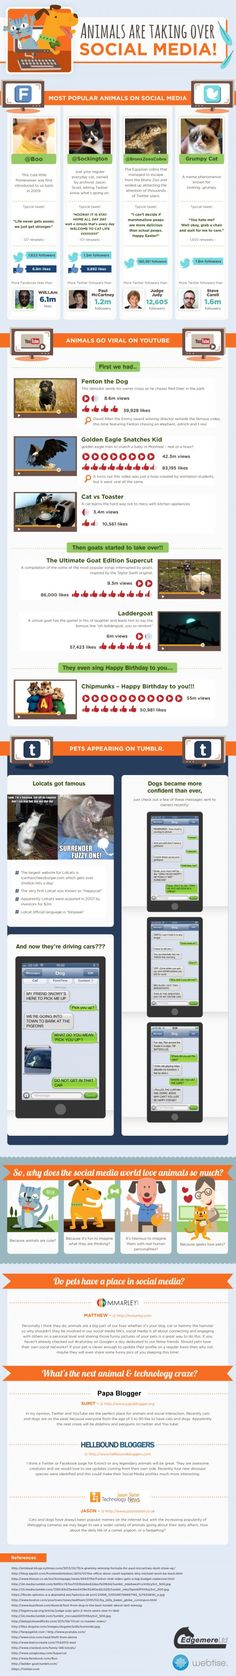 Animals Have Taken Over Social Media [#INFOGRAPHIC]